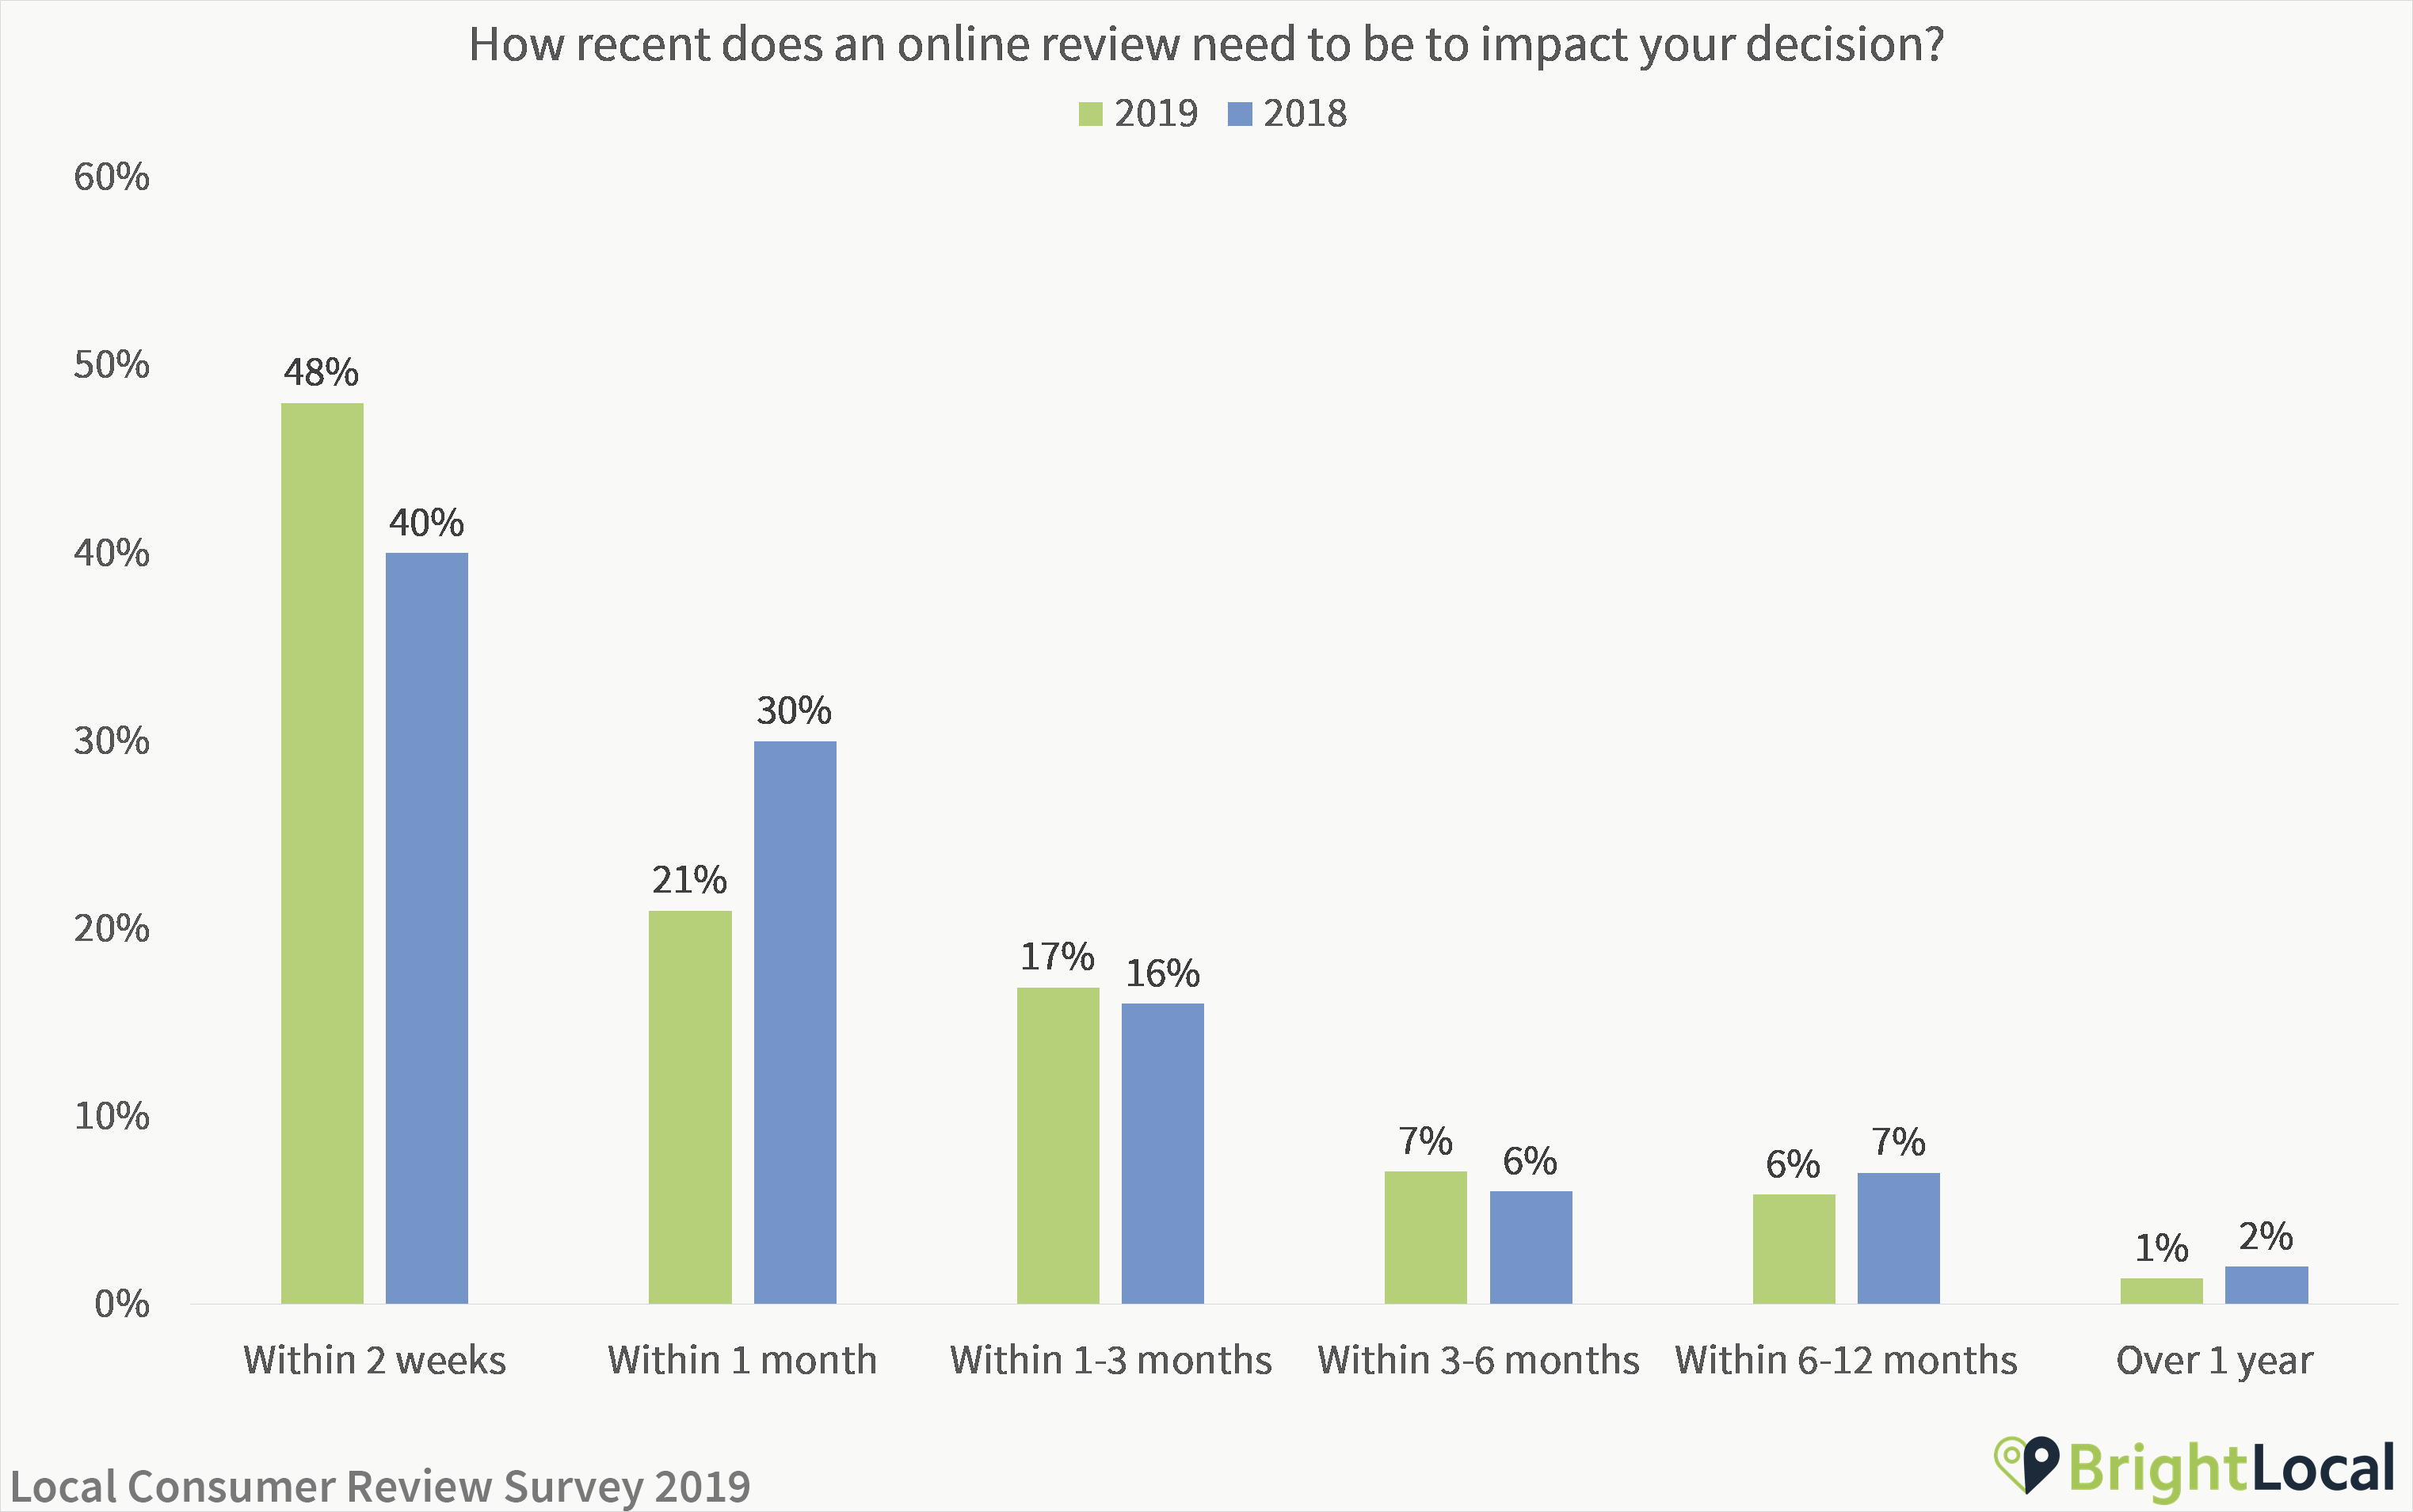 How recent does an online review need to be